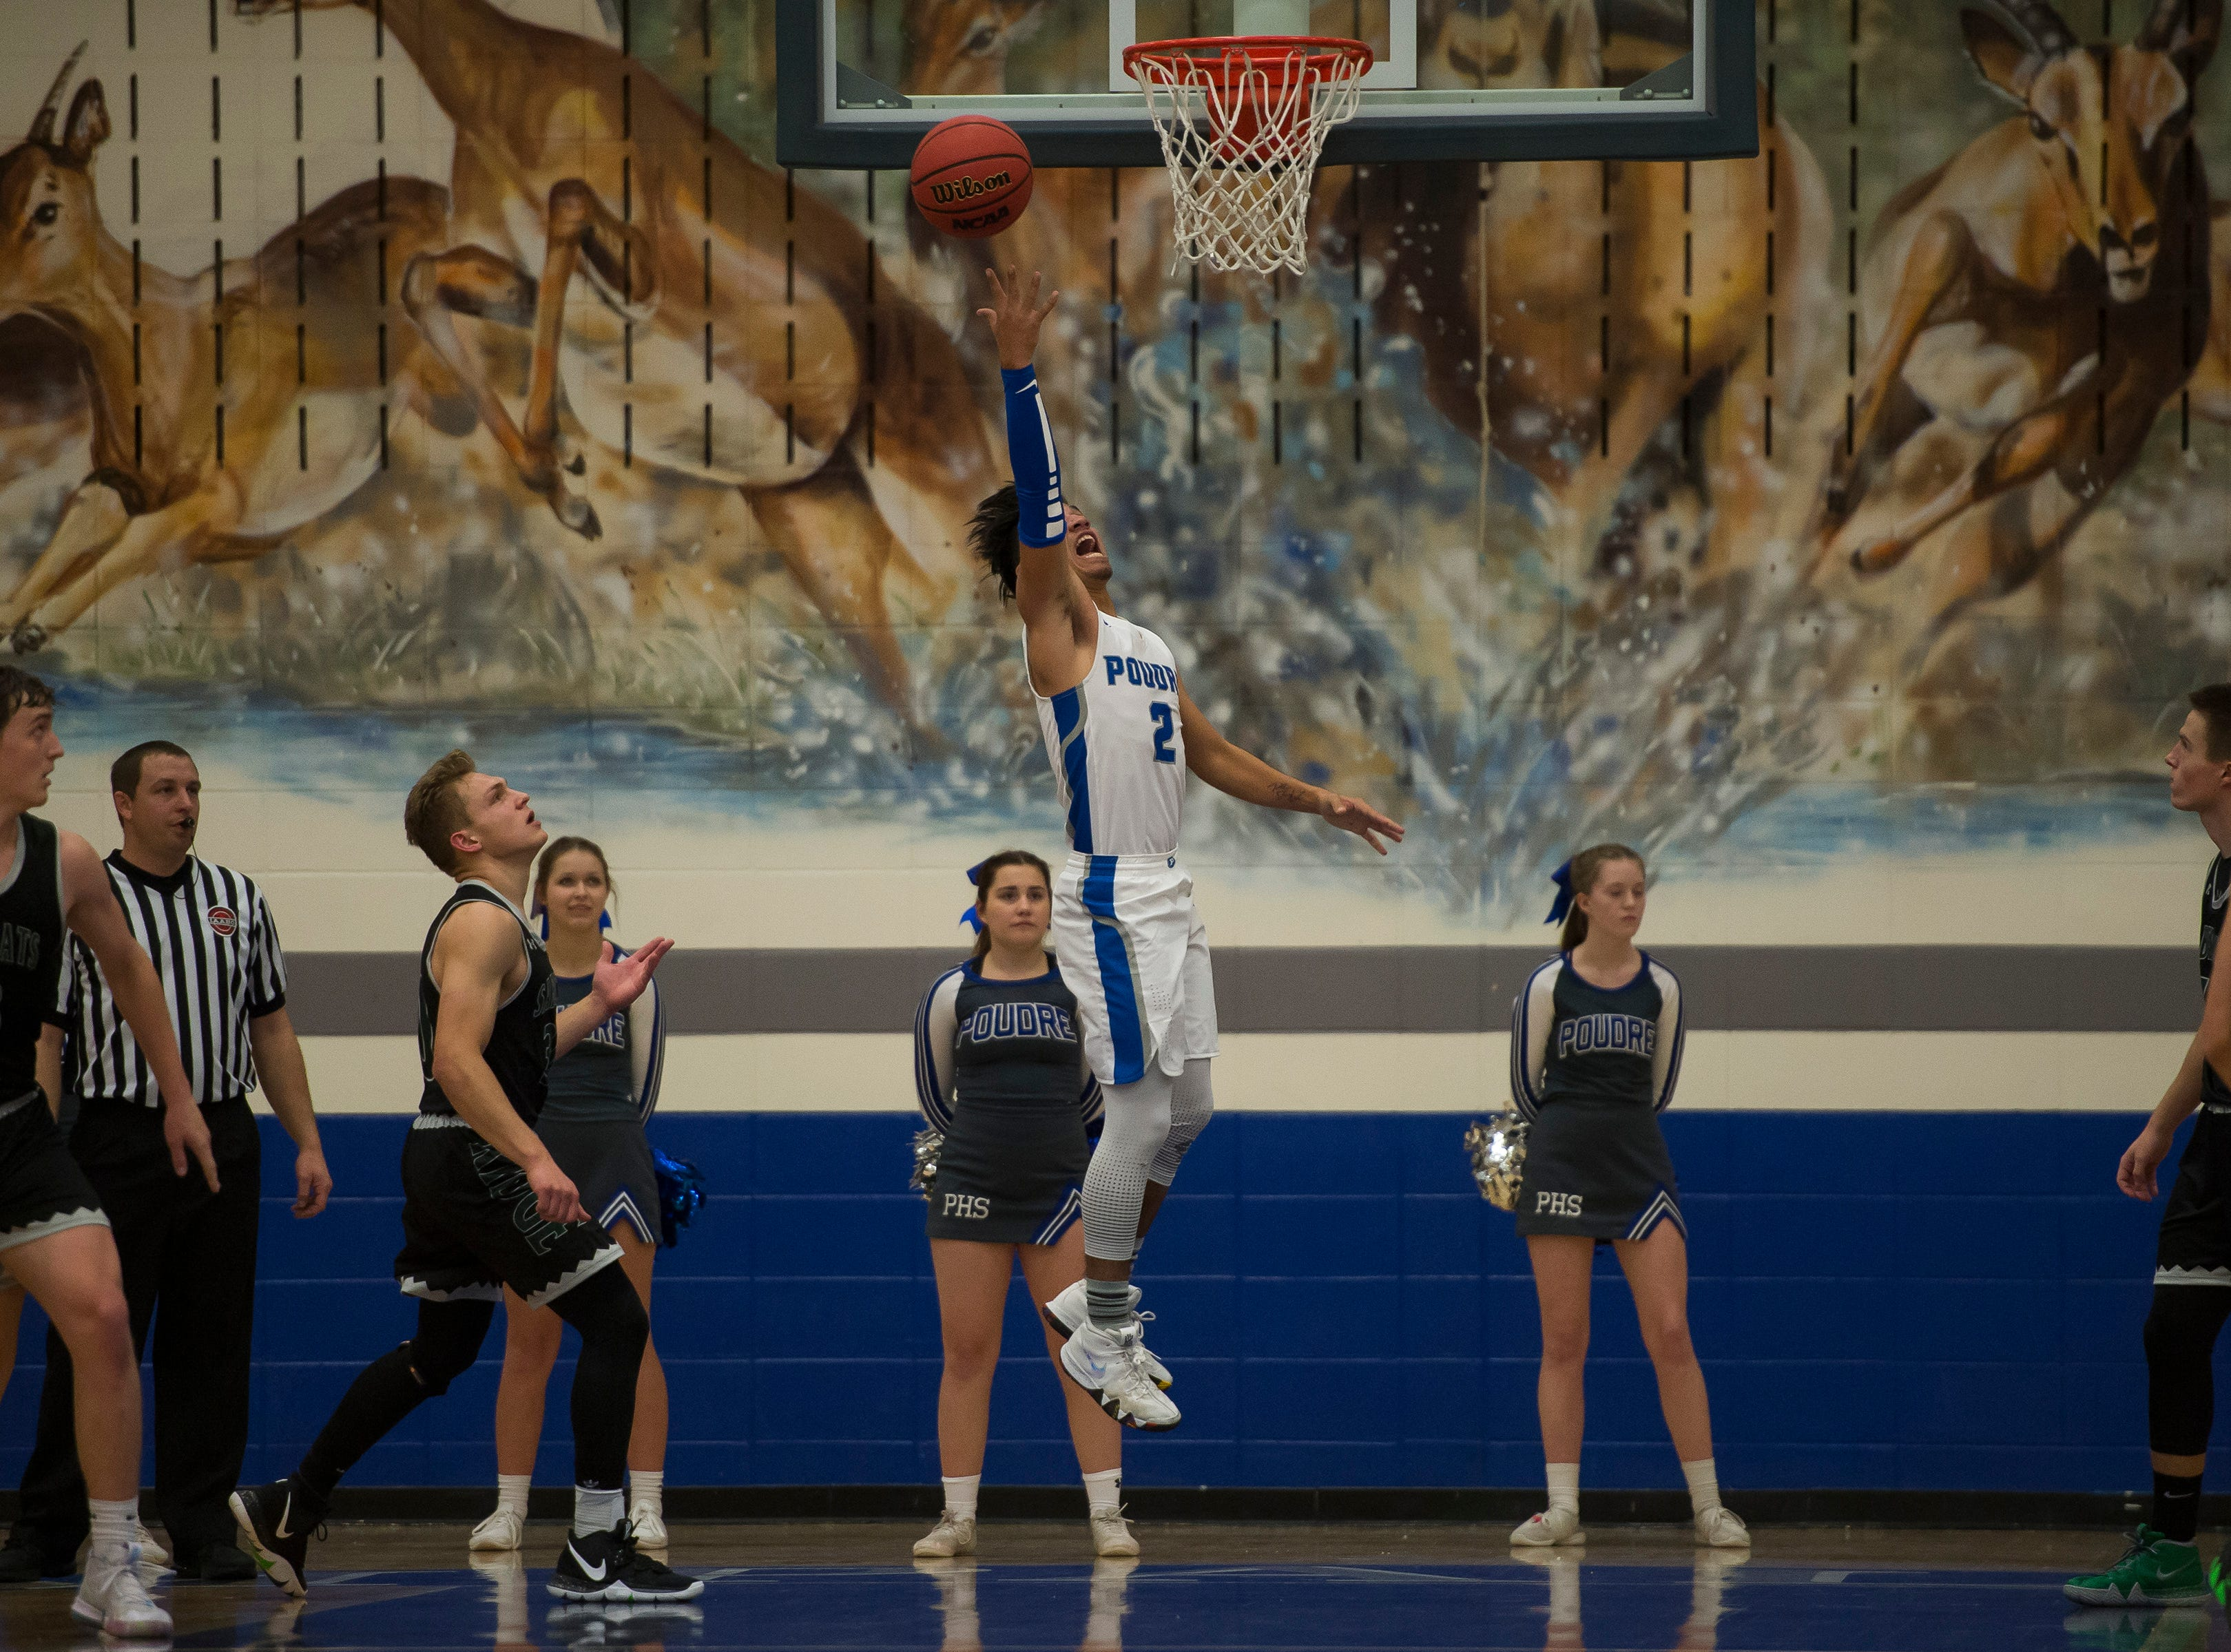 Poudre High School junior Sergio Tarango (2) puts up a layup during a game against Fossil Ridge High School on Tuesday, Dec. 4, 2018, at Poudre High School on Fort Collins, Colo.